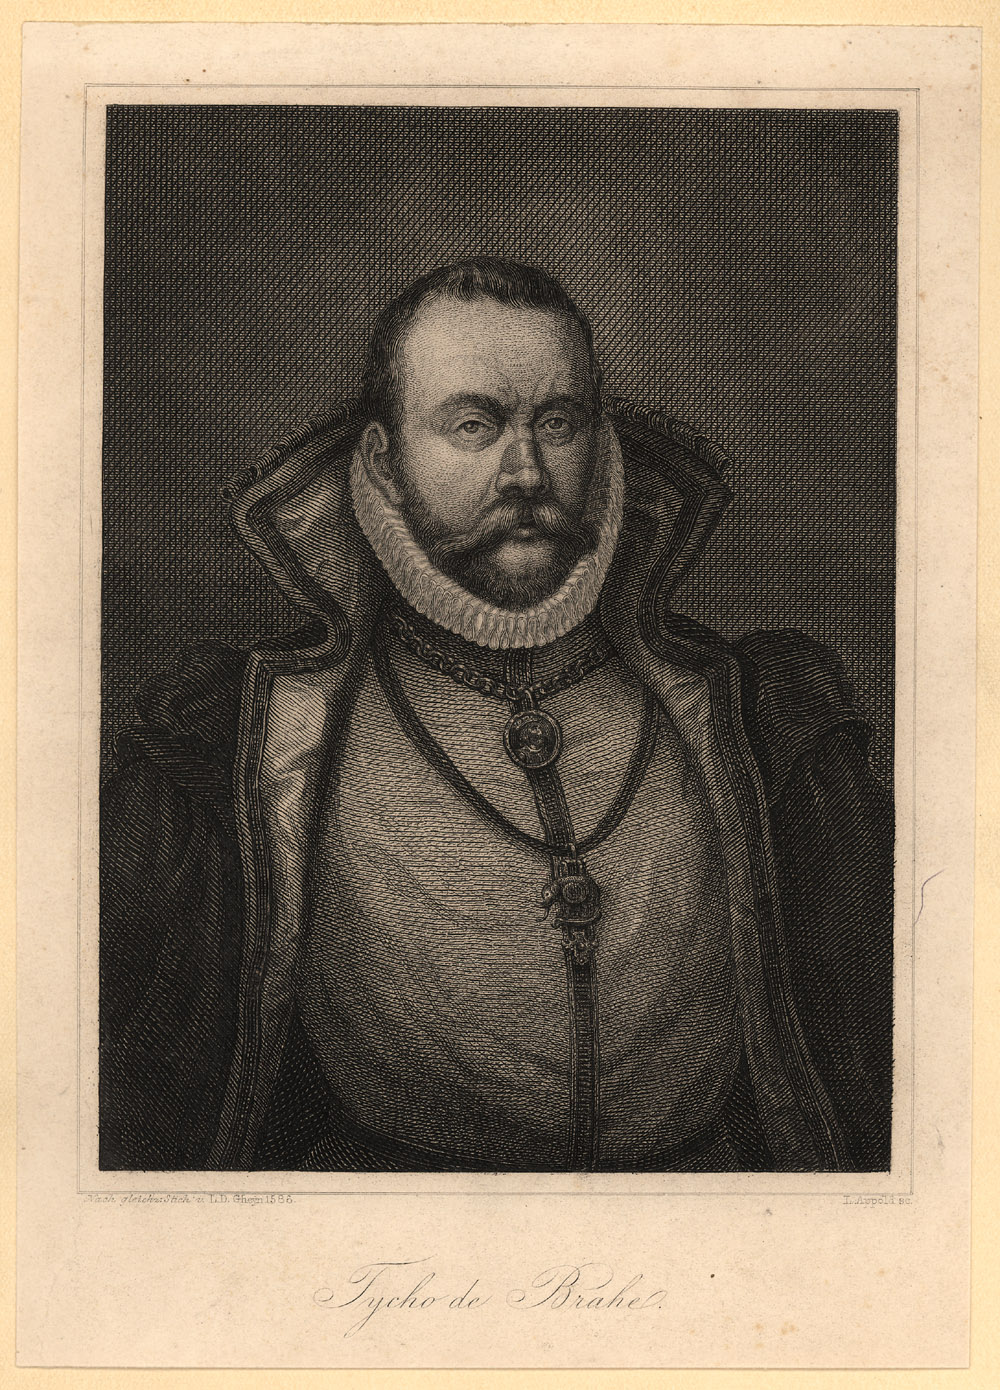 Portrait of Tycho Brahe,  Image number:SIL14-B7-08a